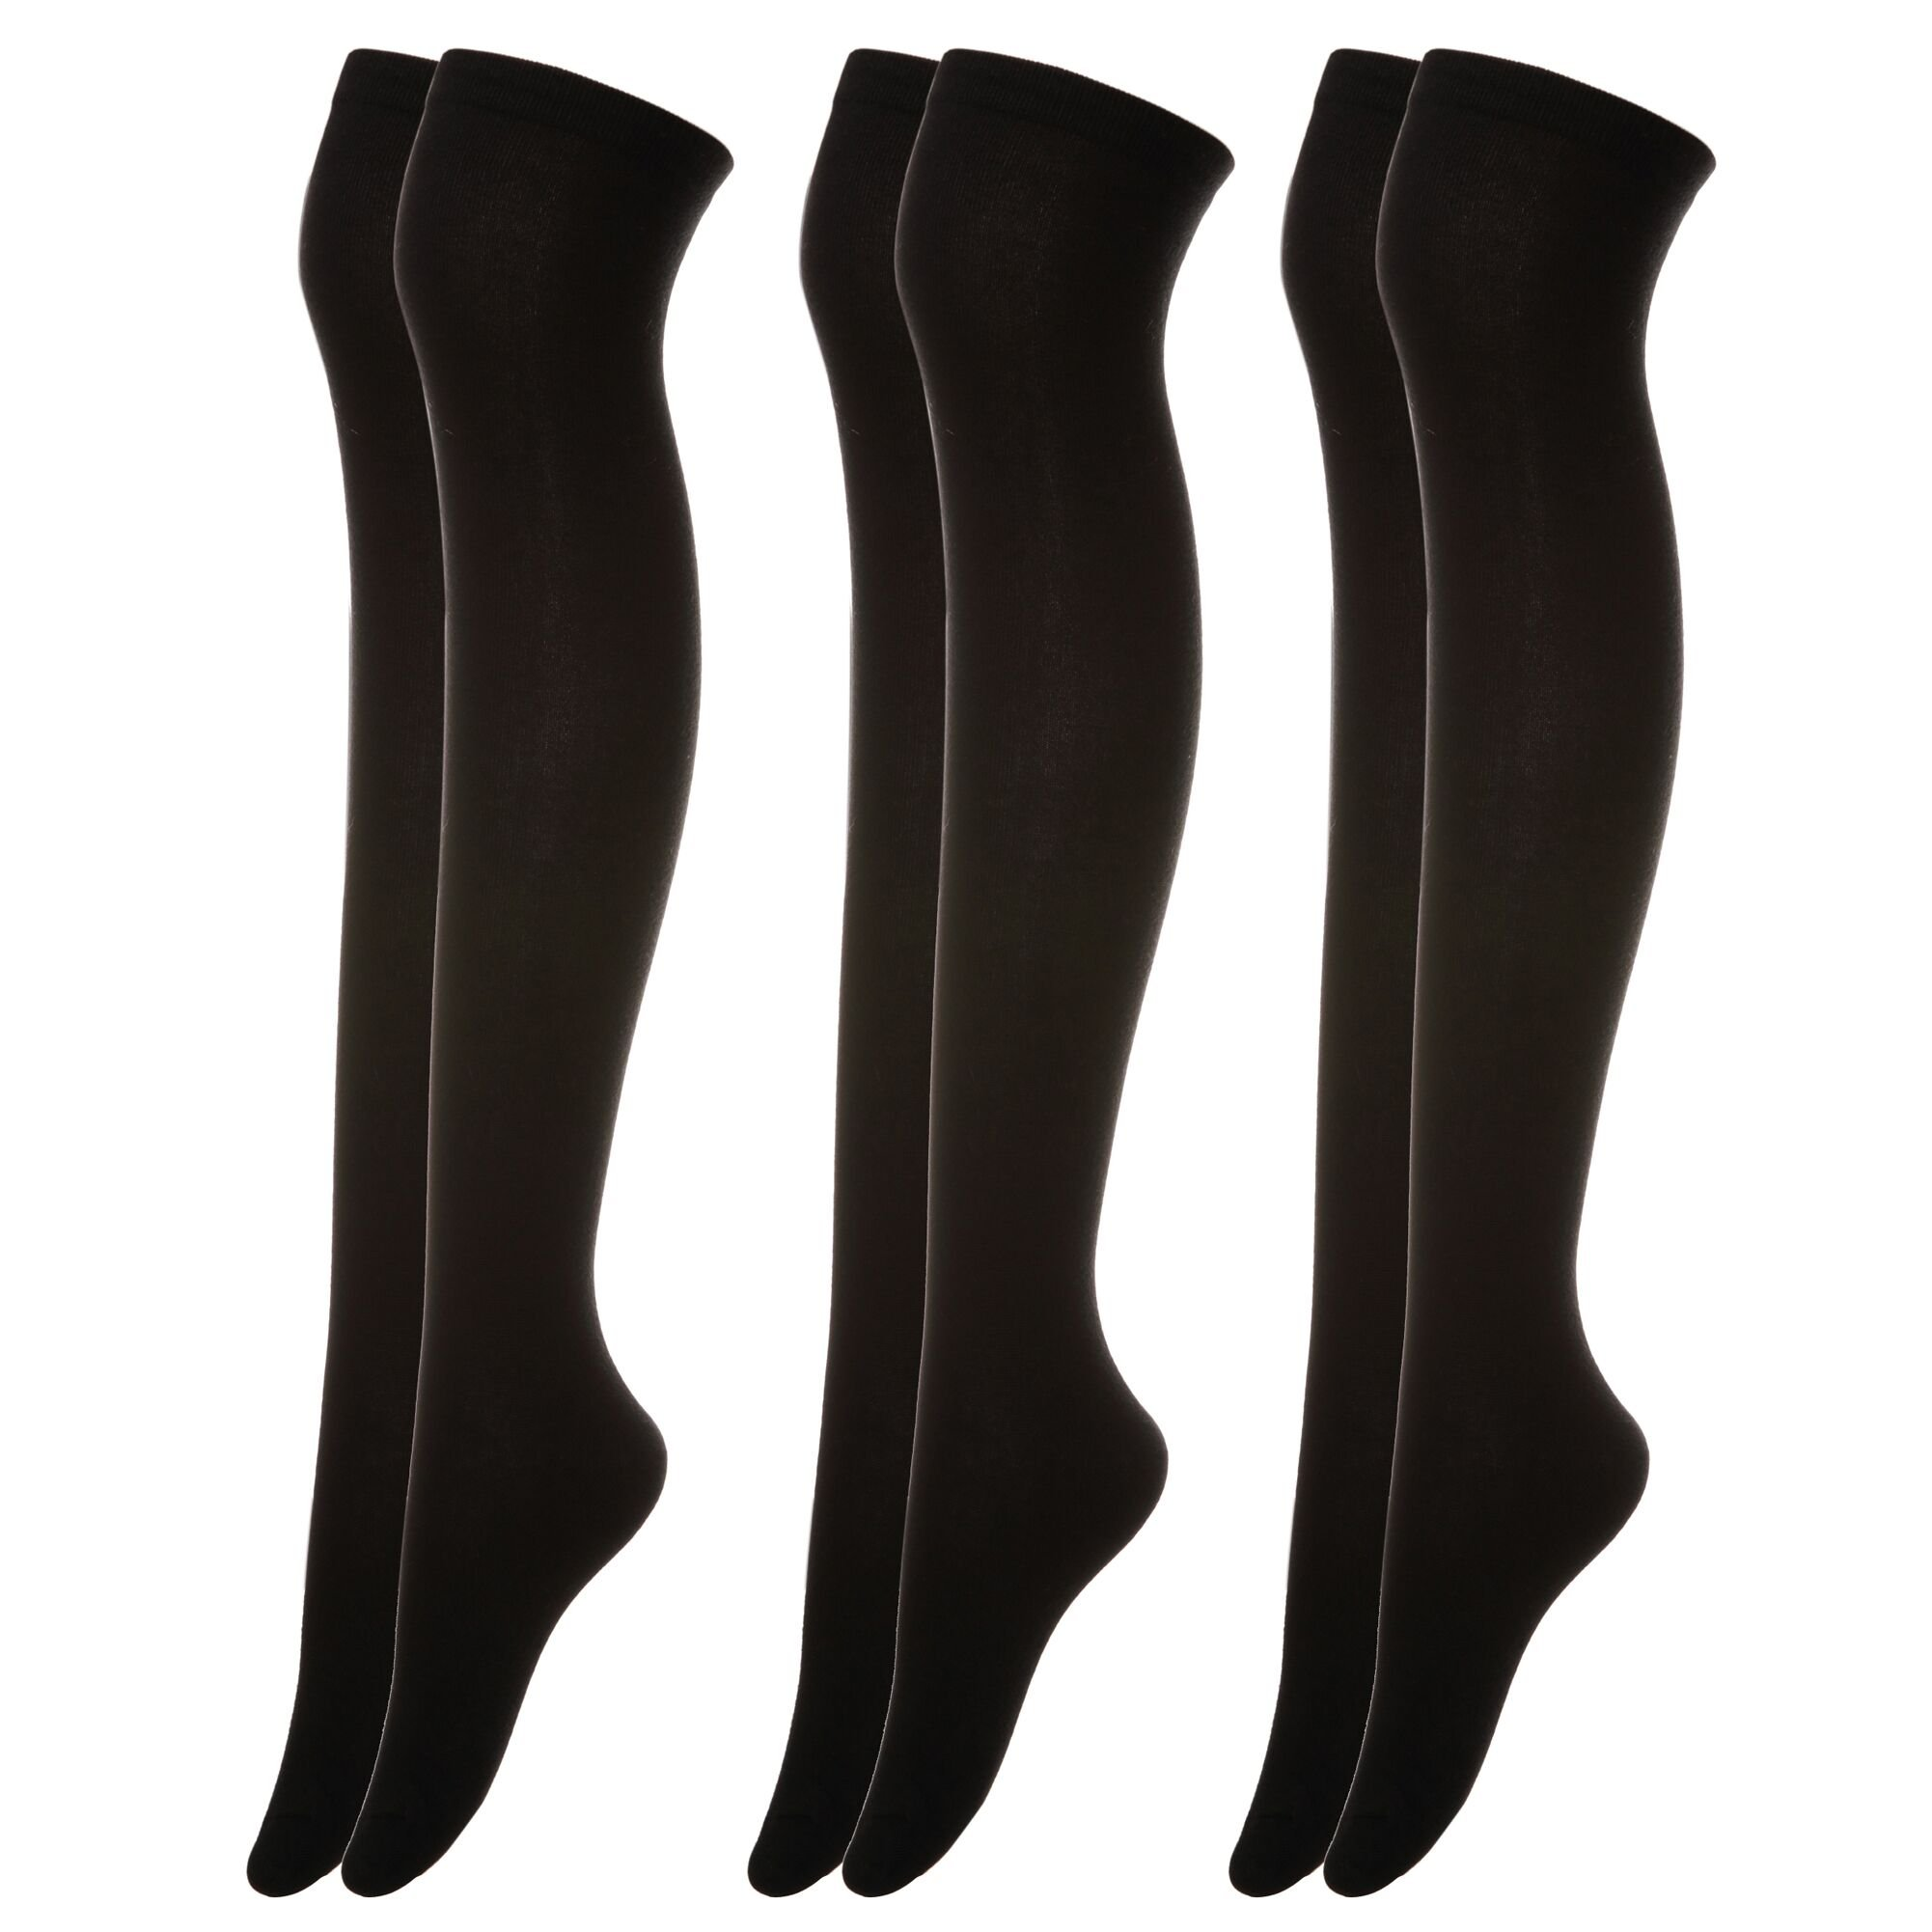 YEBING 3 Pack Women Girls Knee High Cotton Socks Boot Thigh High Stocking Leg Warmer (Black)